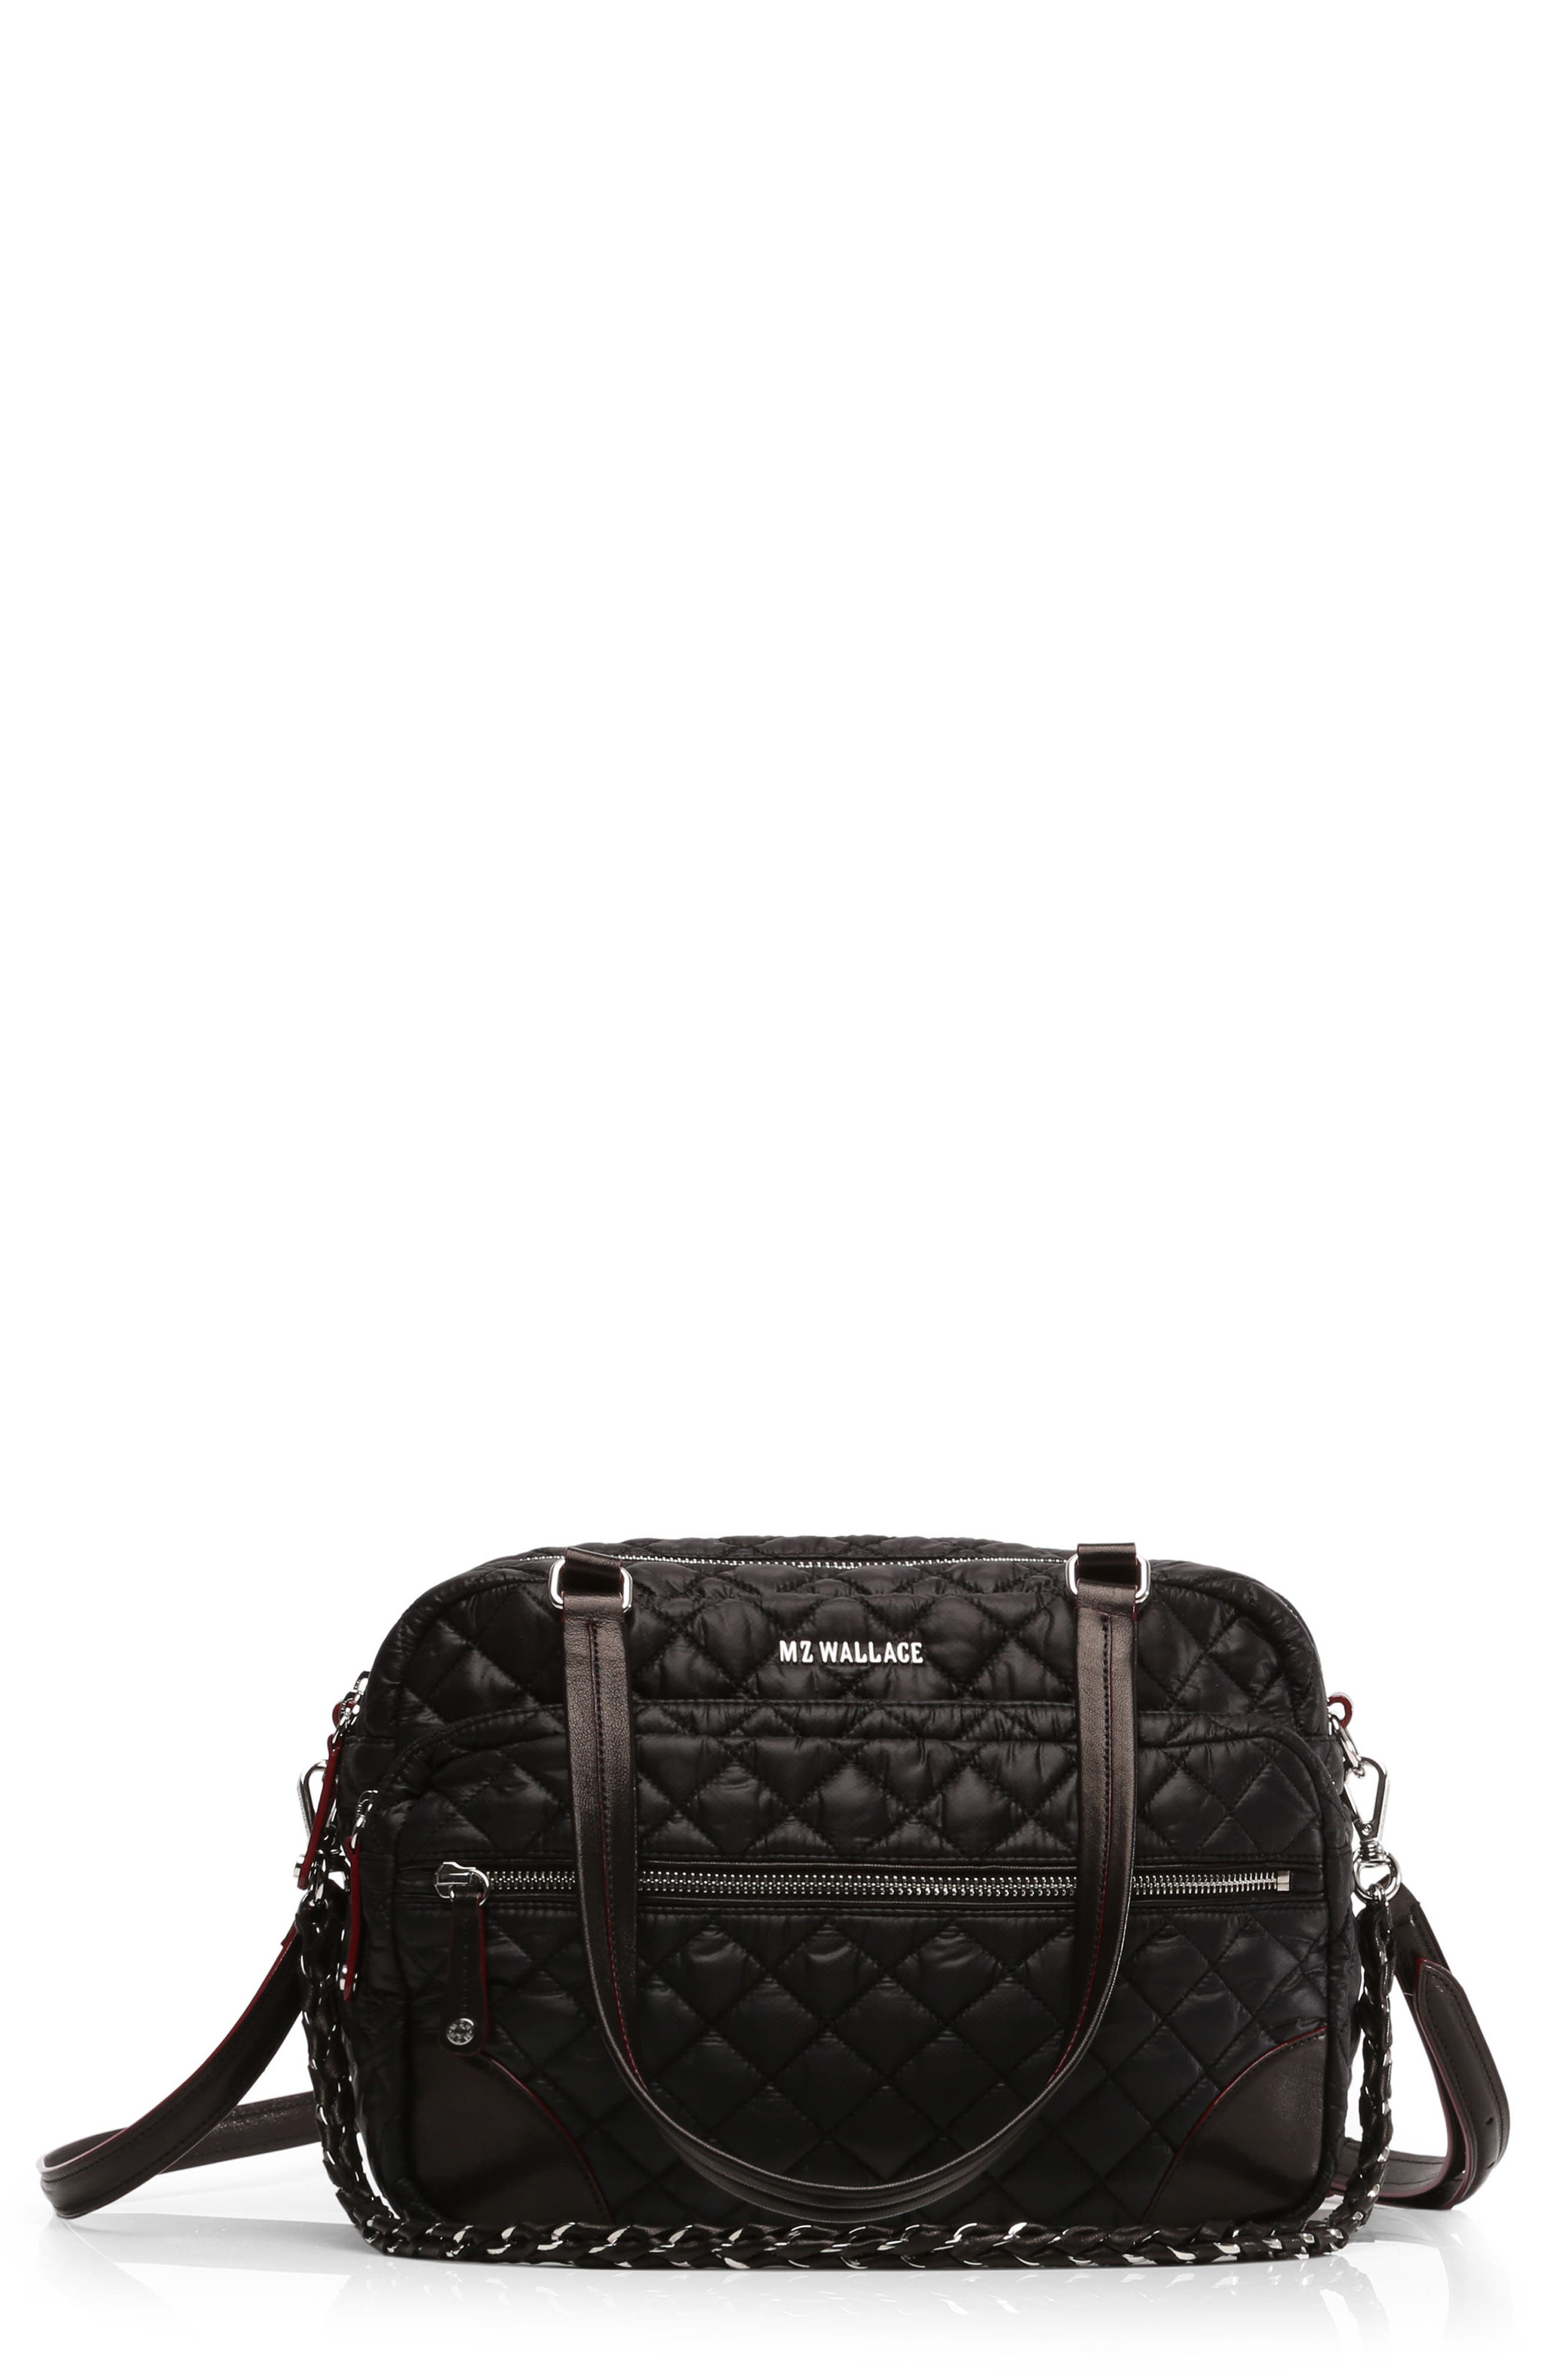 Main Image - MZ Wallace Medium Crosby Quilted Oxford Nylon Crossbody Bag